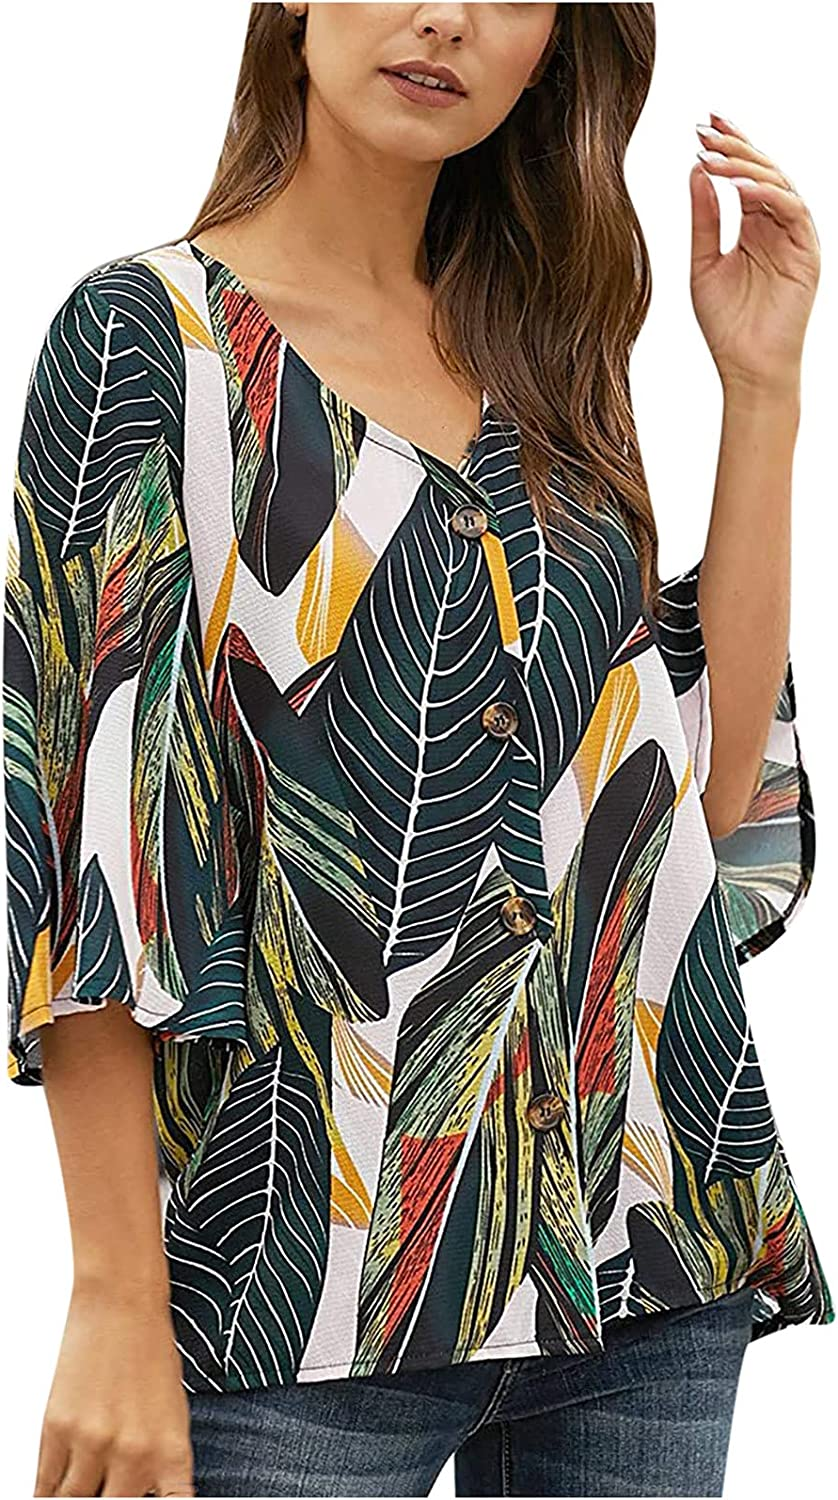 Women's Print Blouse Casual 3/4 Tiered Bell Sleeve V Neck Print Button Down Loose Tops Blouses Shirt